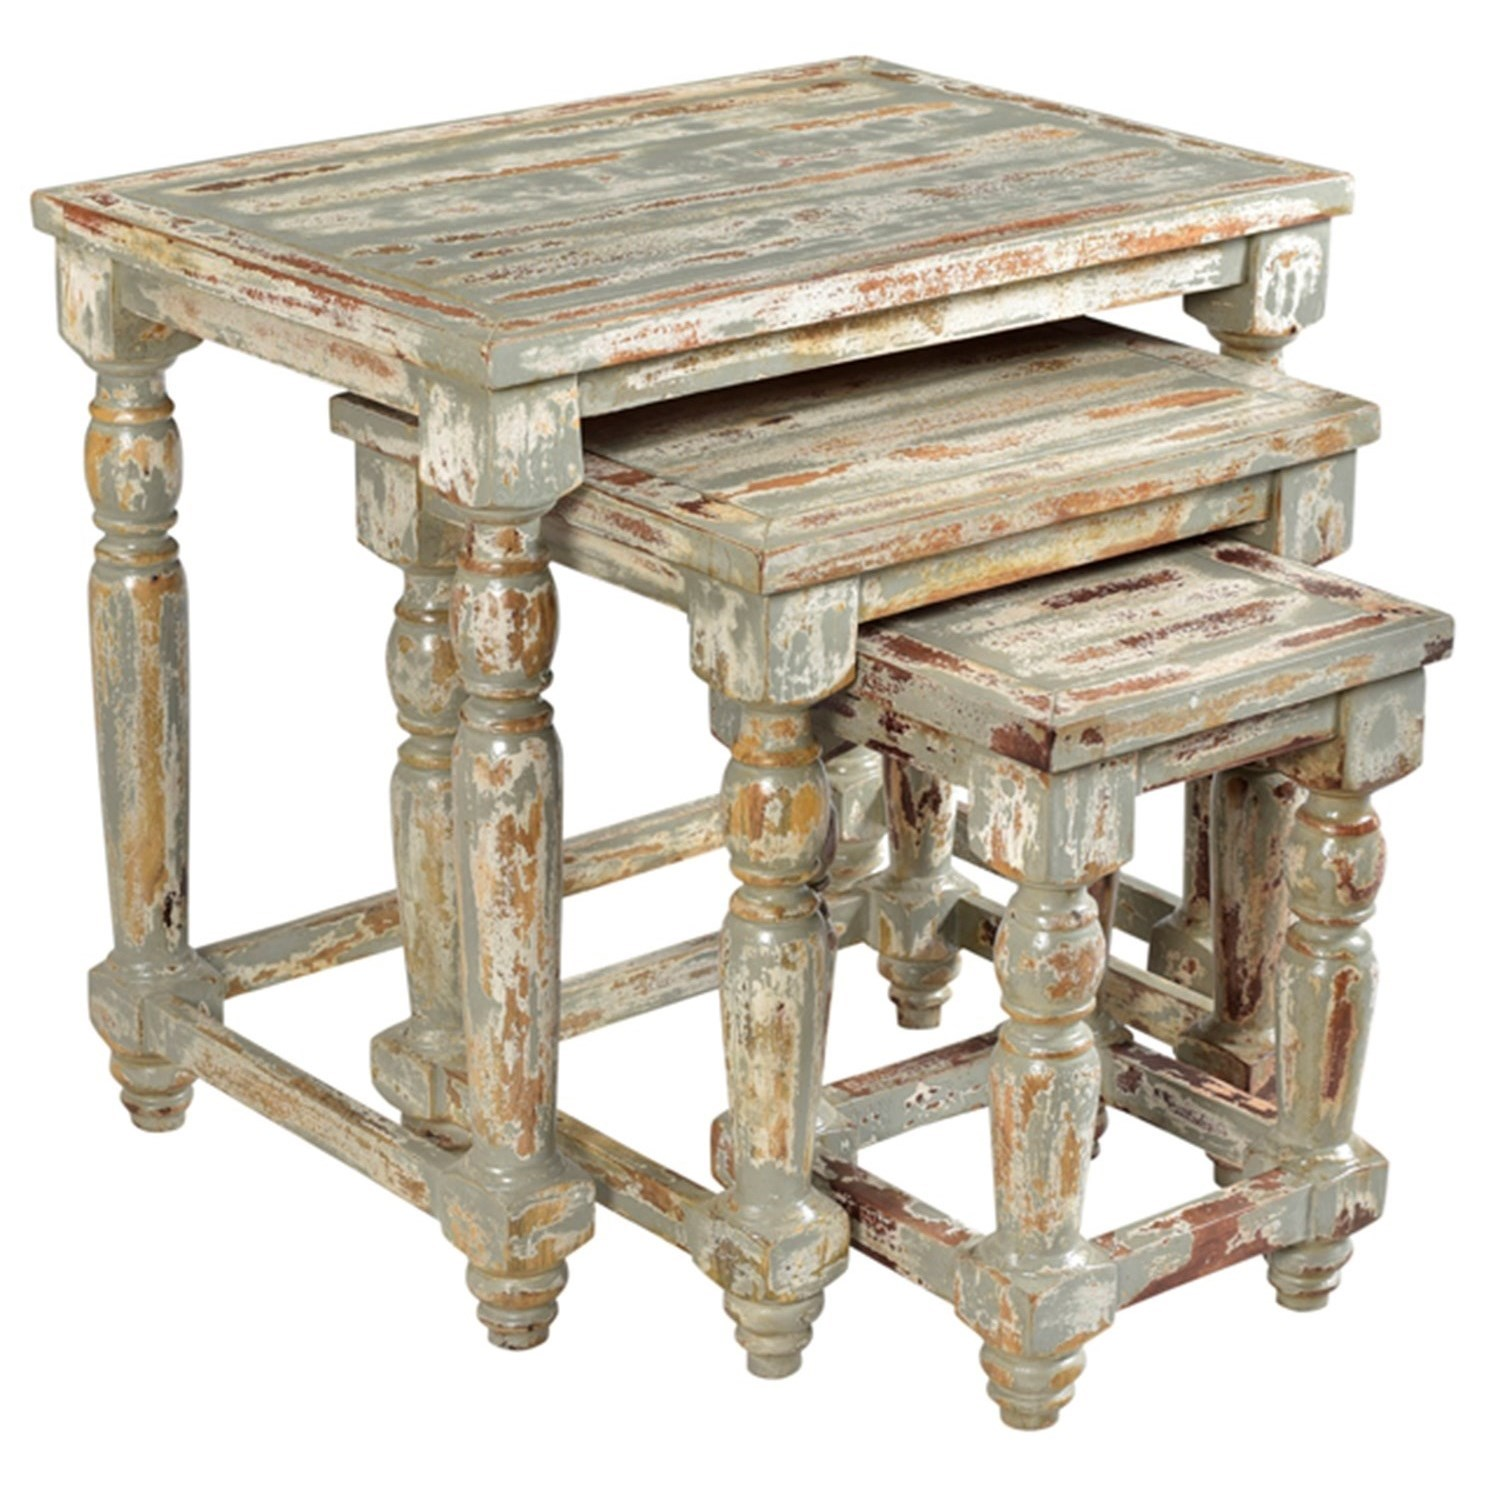 Mango Wood Coffee Table Distressed Gray: Crestview Collection Accent Furniture Bengal Manor Mango